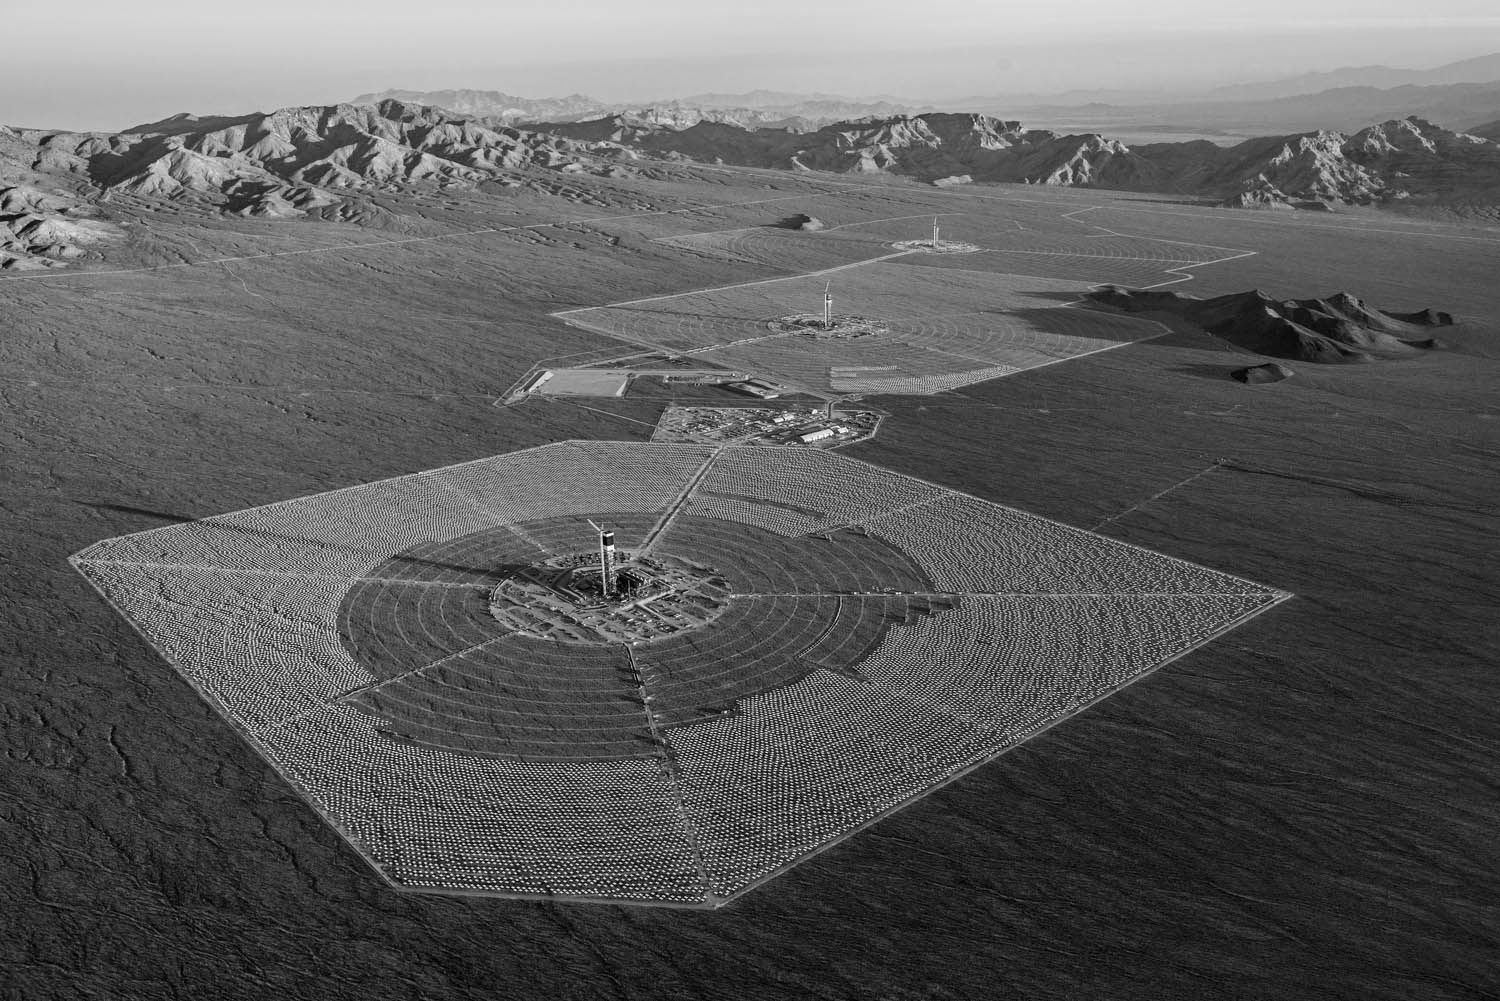 Changing Views: The Evolution of Ivanpah Solar